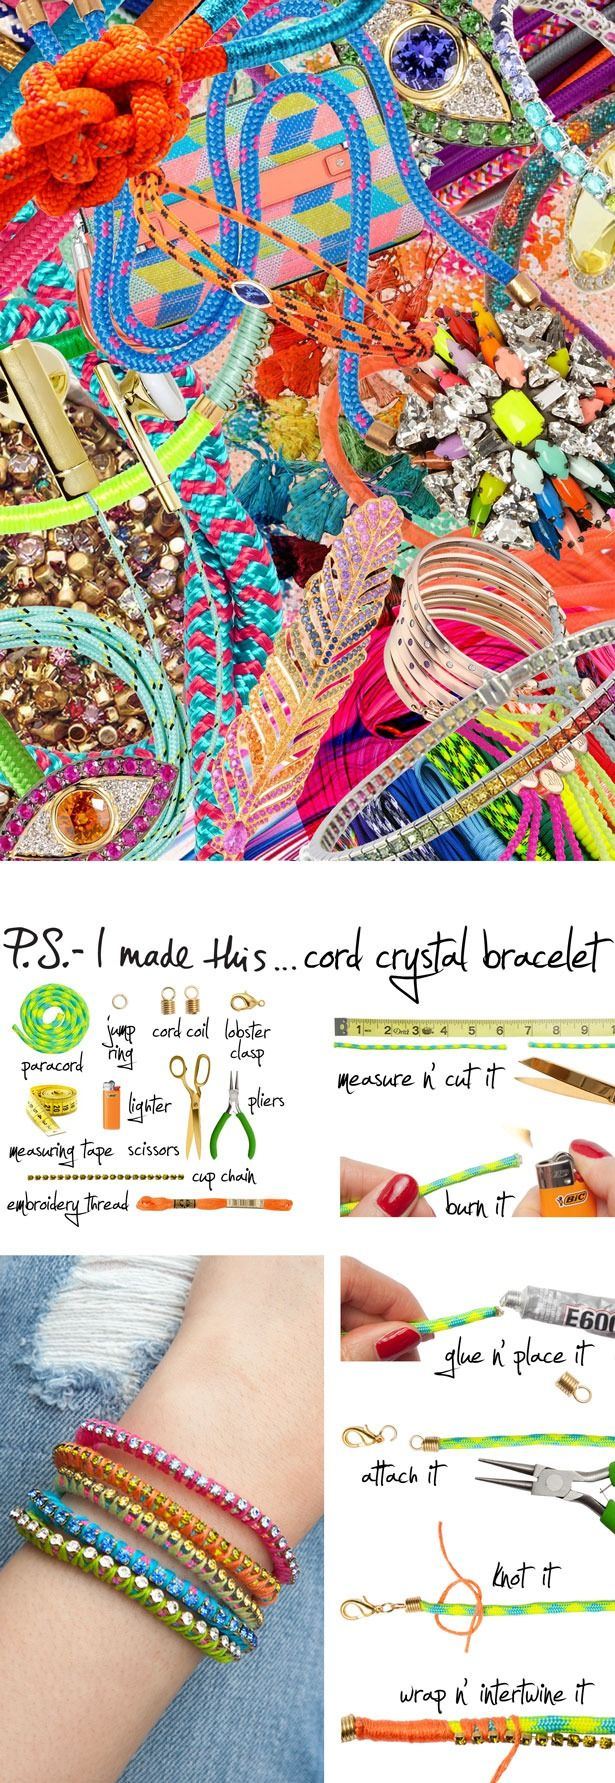 Our recipe for doing thingsright is simple: go big, and go bright. A wrist that sports stacks of vivid color mixedwith a bit of bling is a reminder of what summer is all about - letting loose and havingfun with your friends, and your style.   Tocreate: Usescissorsto cut a piece ofparacordto the approximate size of your wrist and seal the cord by burning the tips. Squeeze a small dab ofglueonto one end of the paracord and place thecord coilcap over. Repeat on the other end. ...